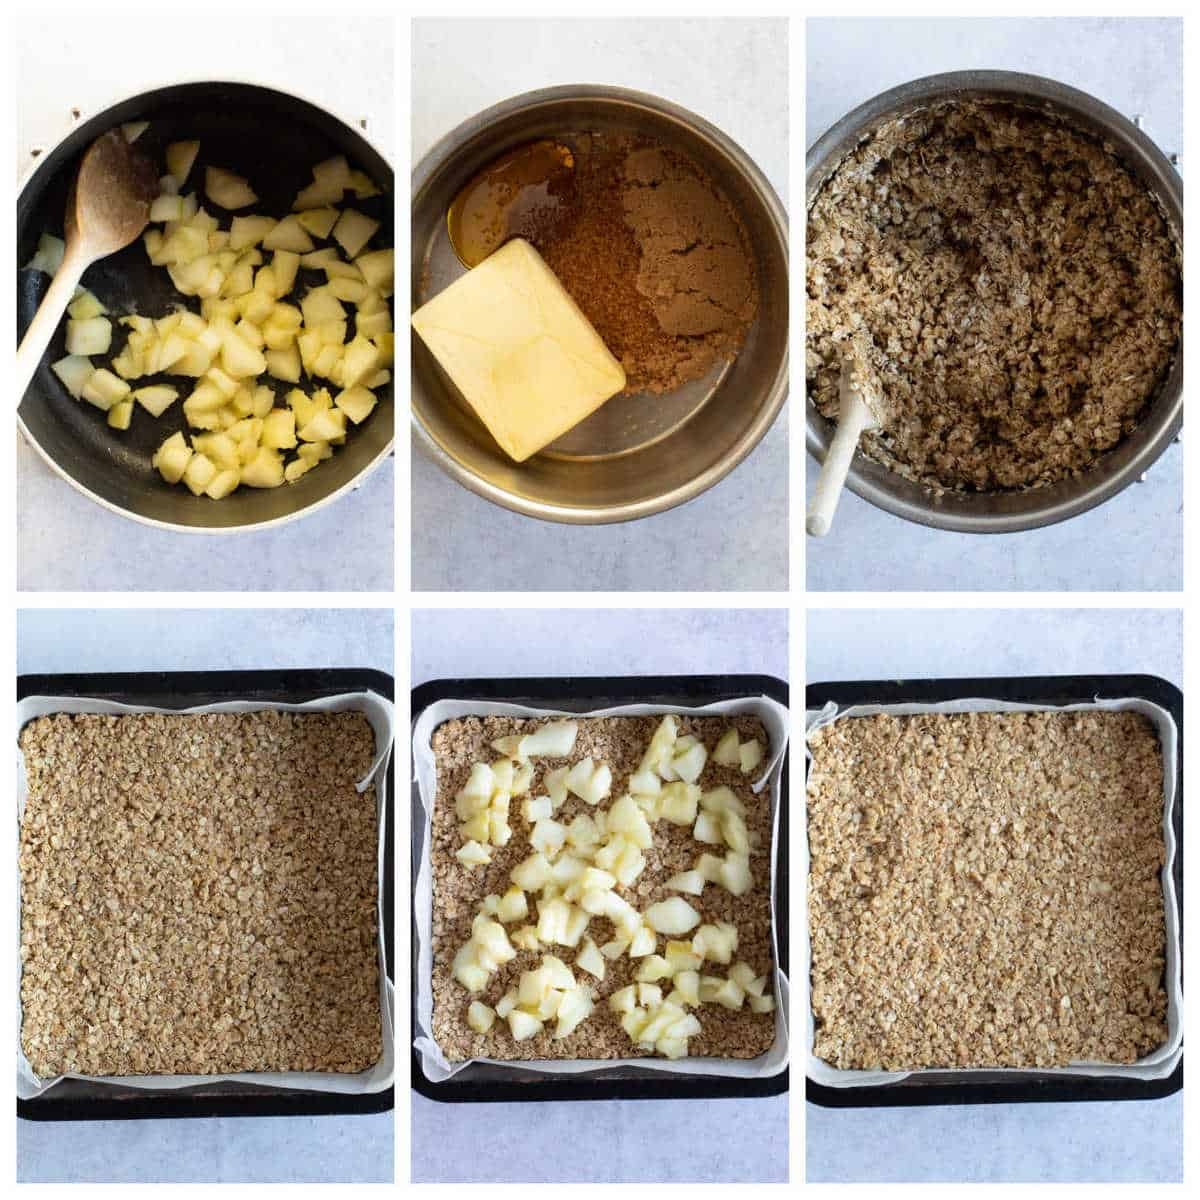 Step by step photo instructions for making apple flapjacks.